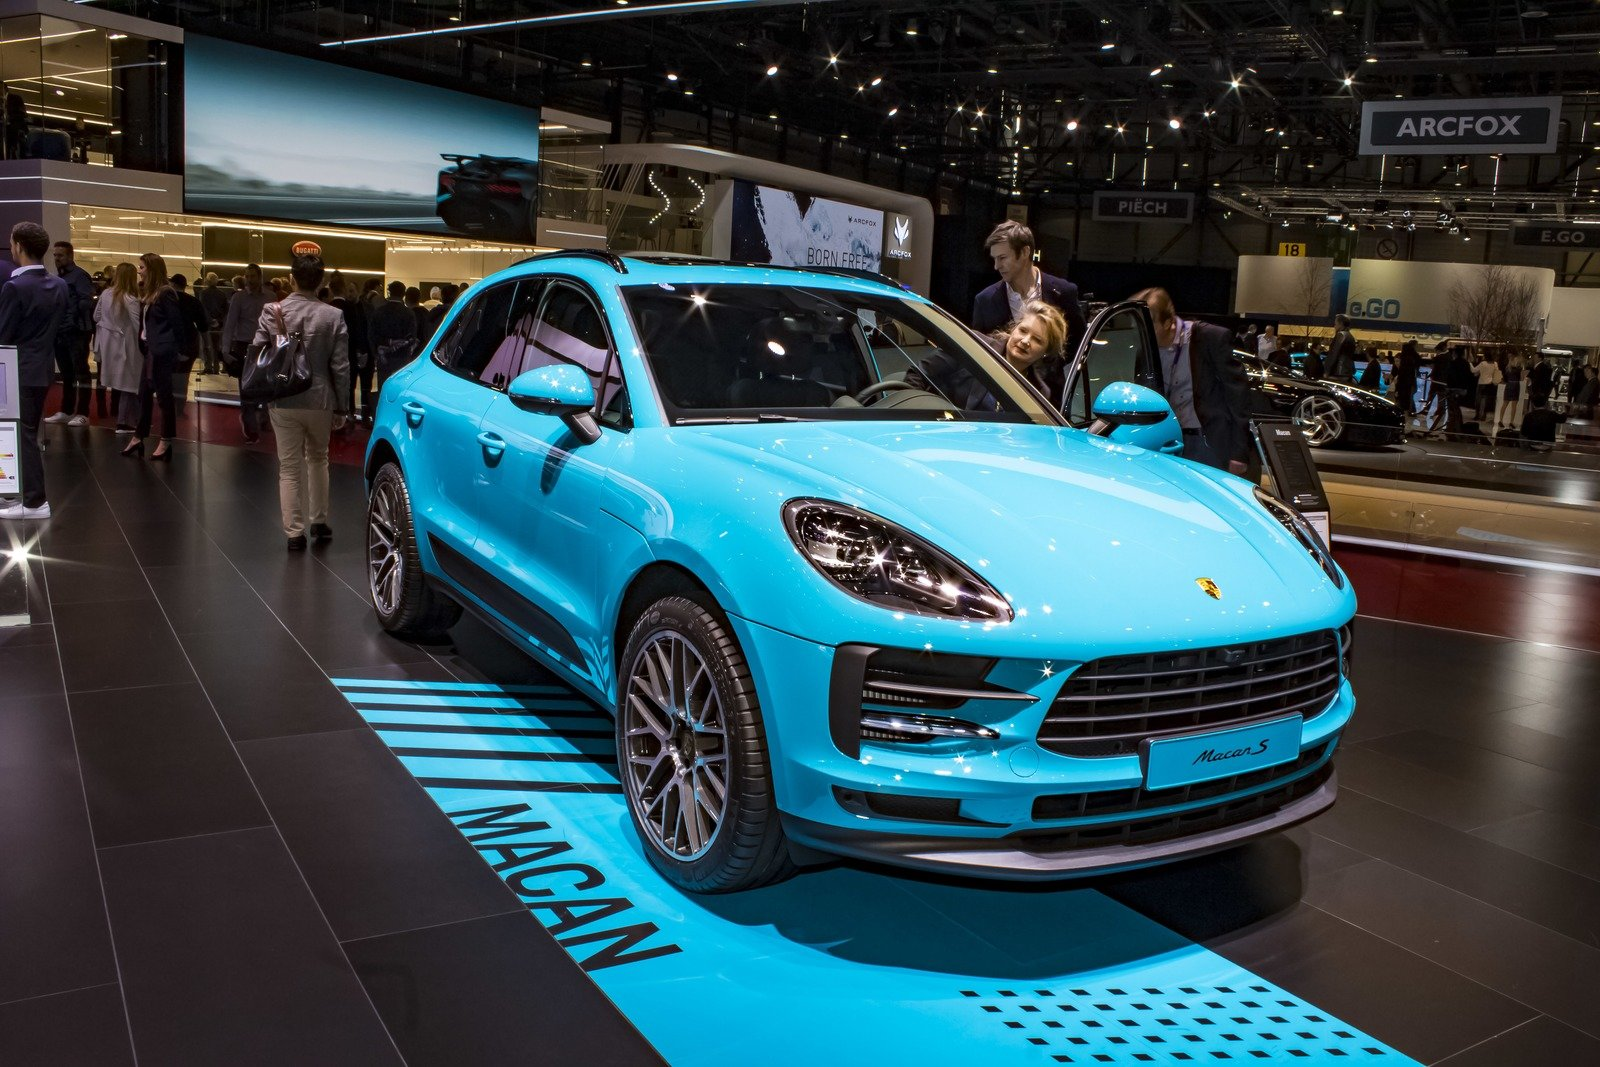 2020 Porsche Macan S Top Speed